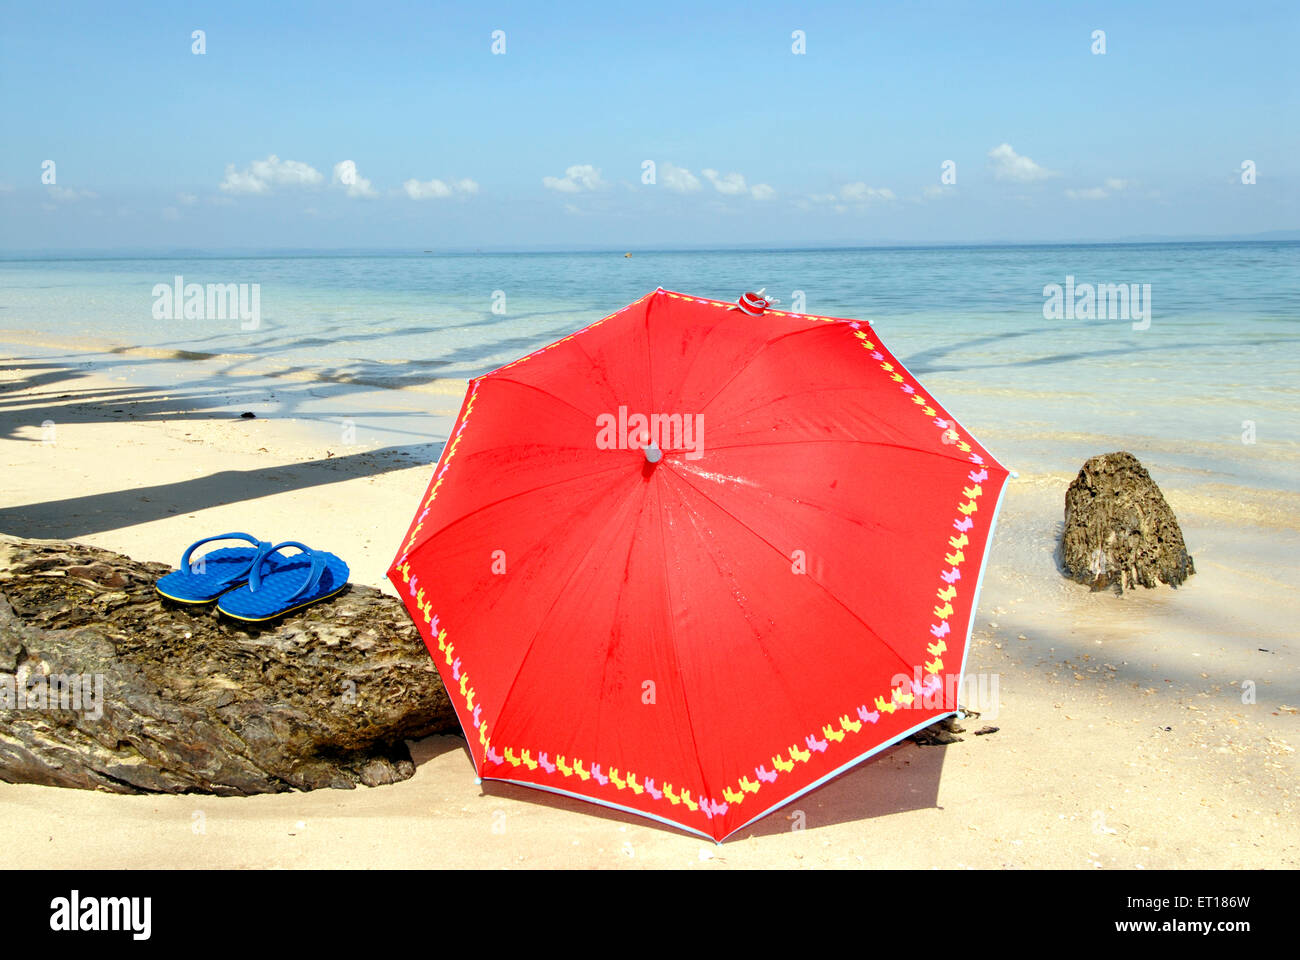 Red umbrella and blue sleeper at Radhanagar beach ; Havelock Islands ; Bay of Bengal Andaman and Nicobar ; India - Stock Image